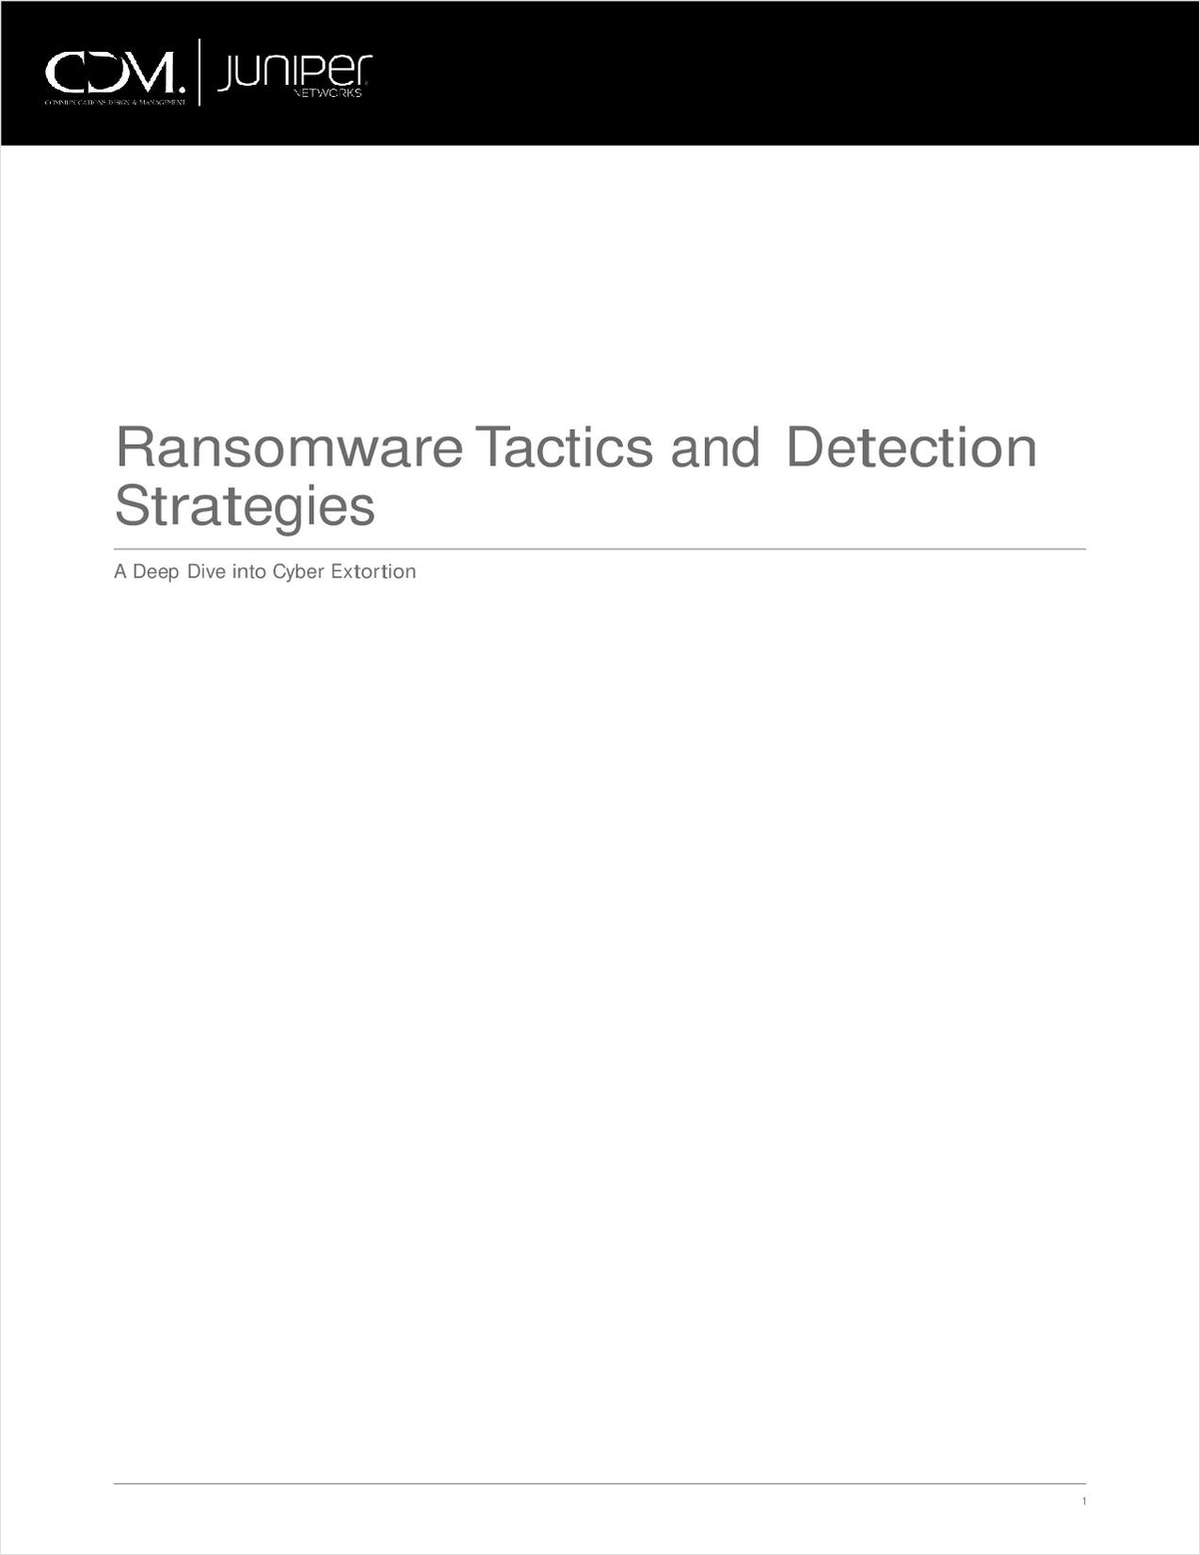 Ransomware Tactics and Detection Strategies